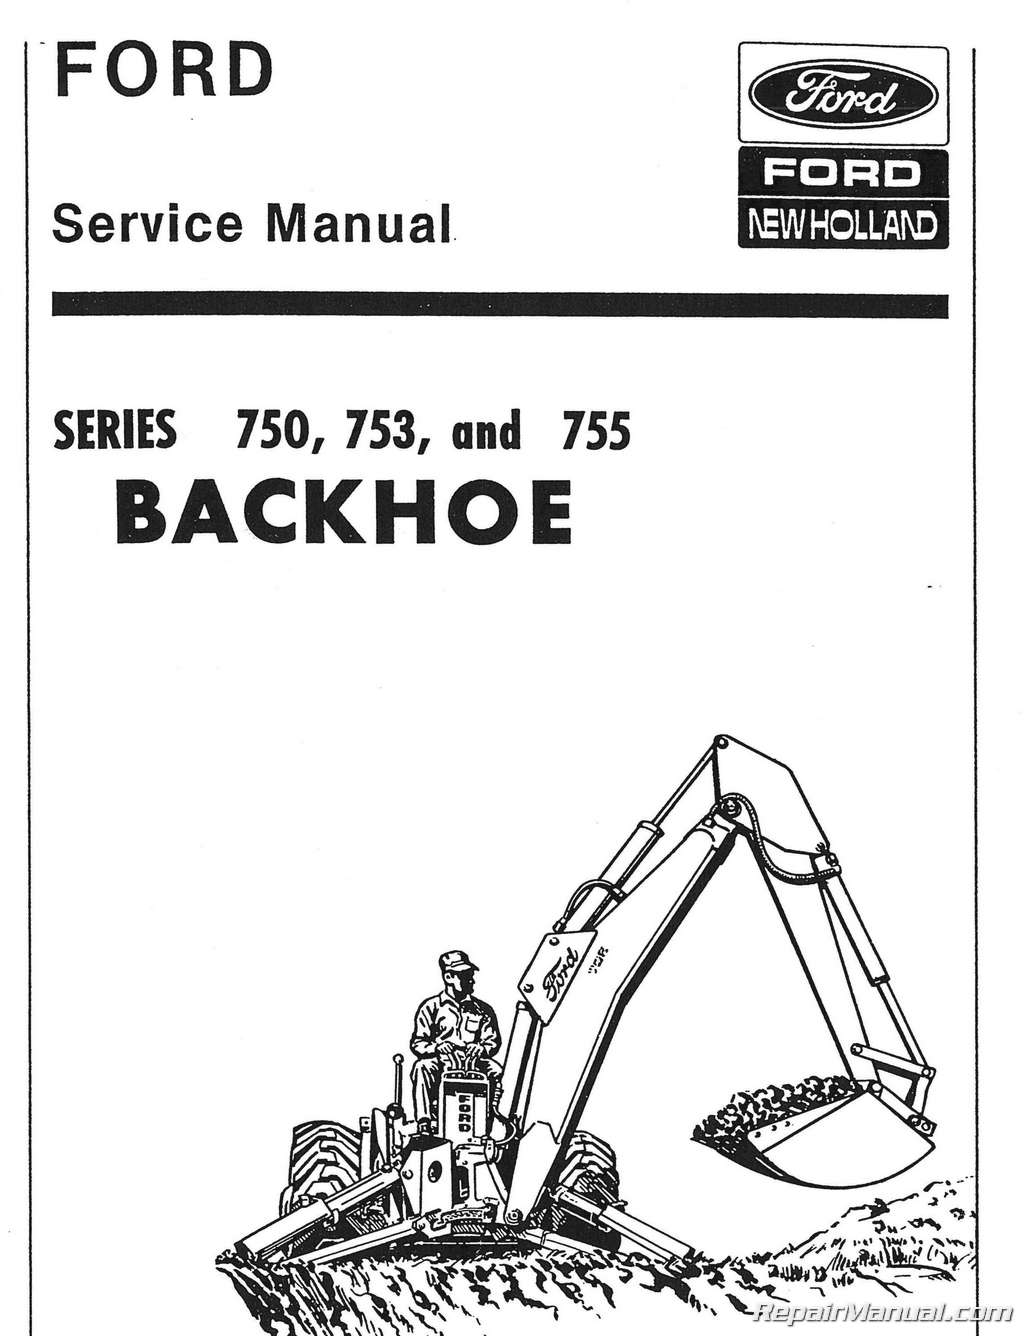 ford 750 753 755 backhoe service manual